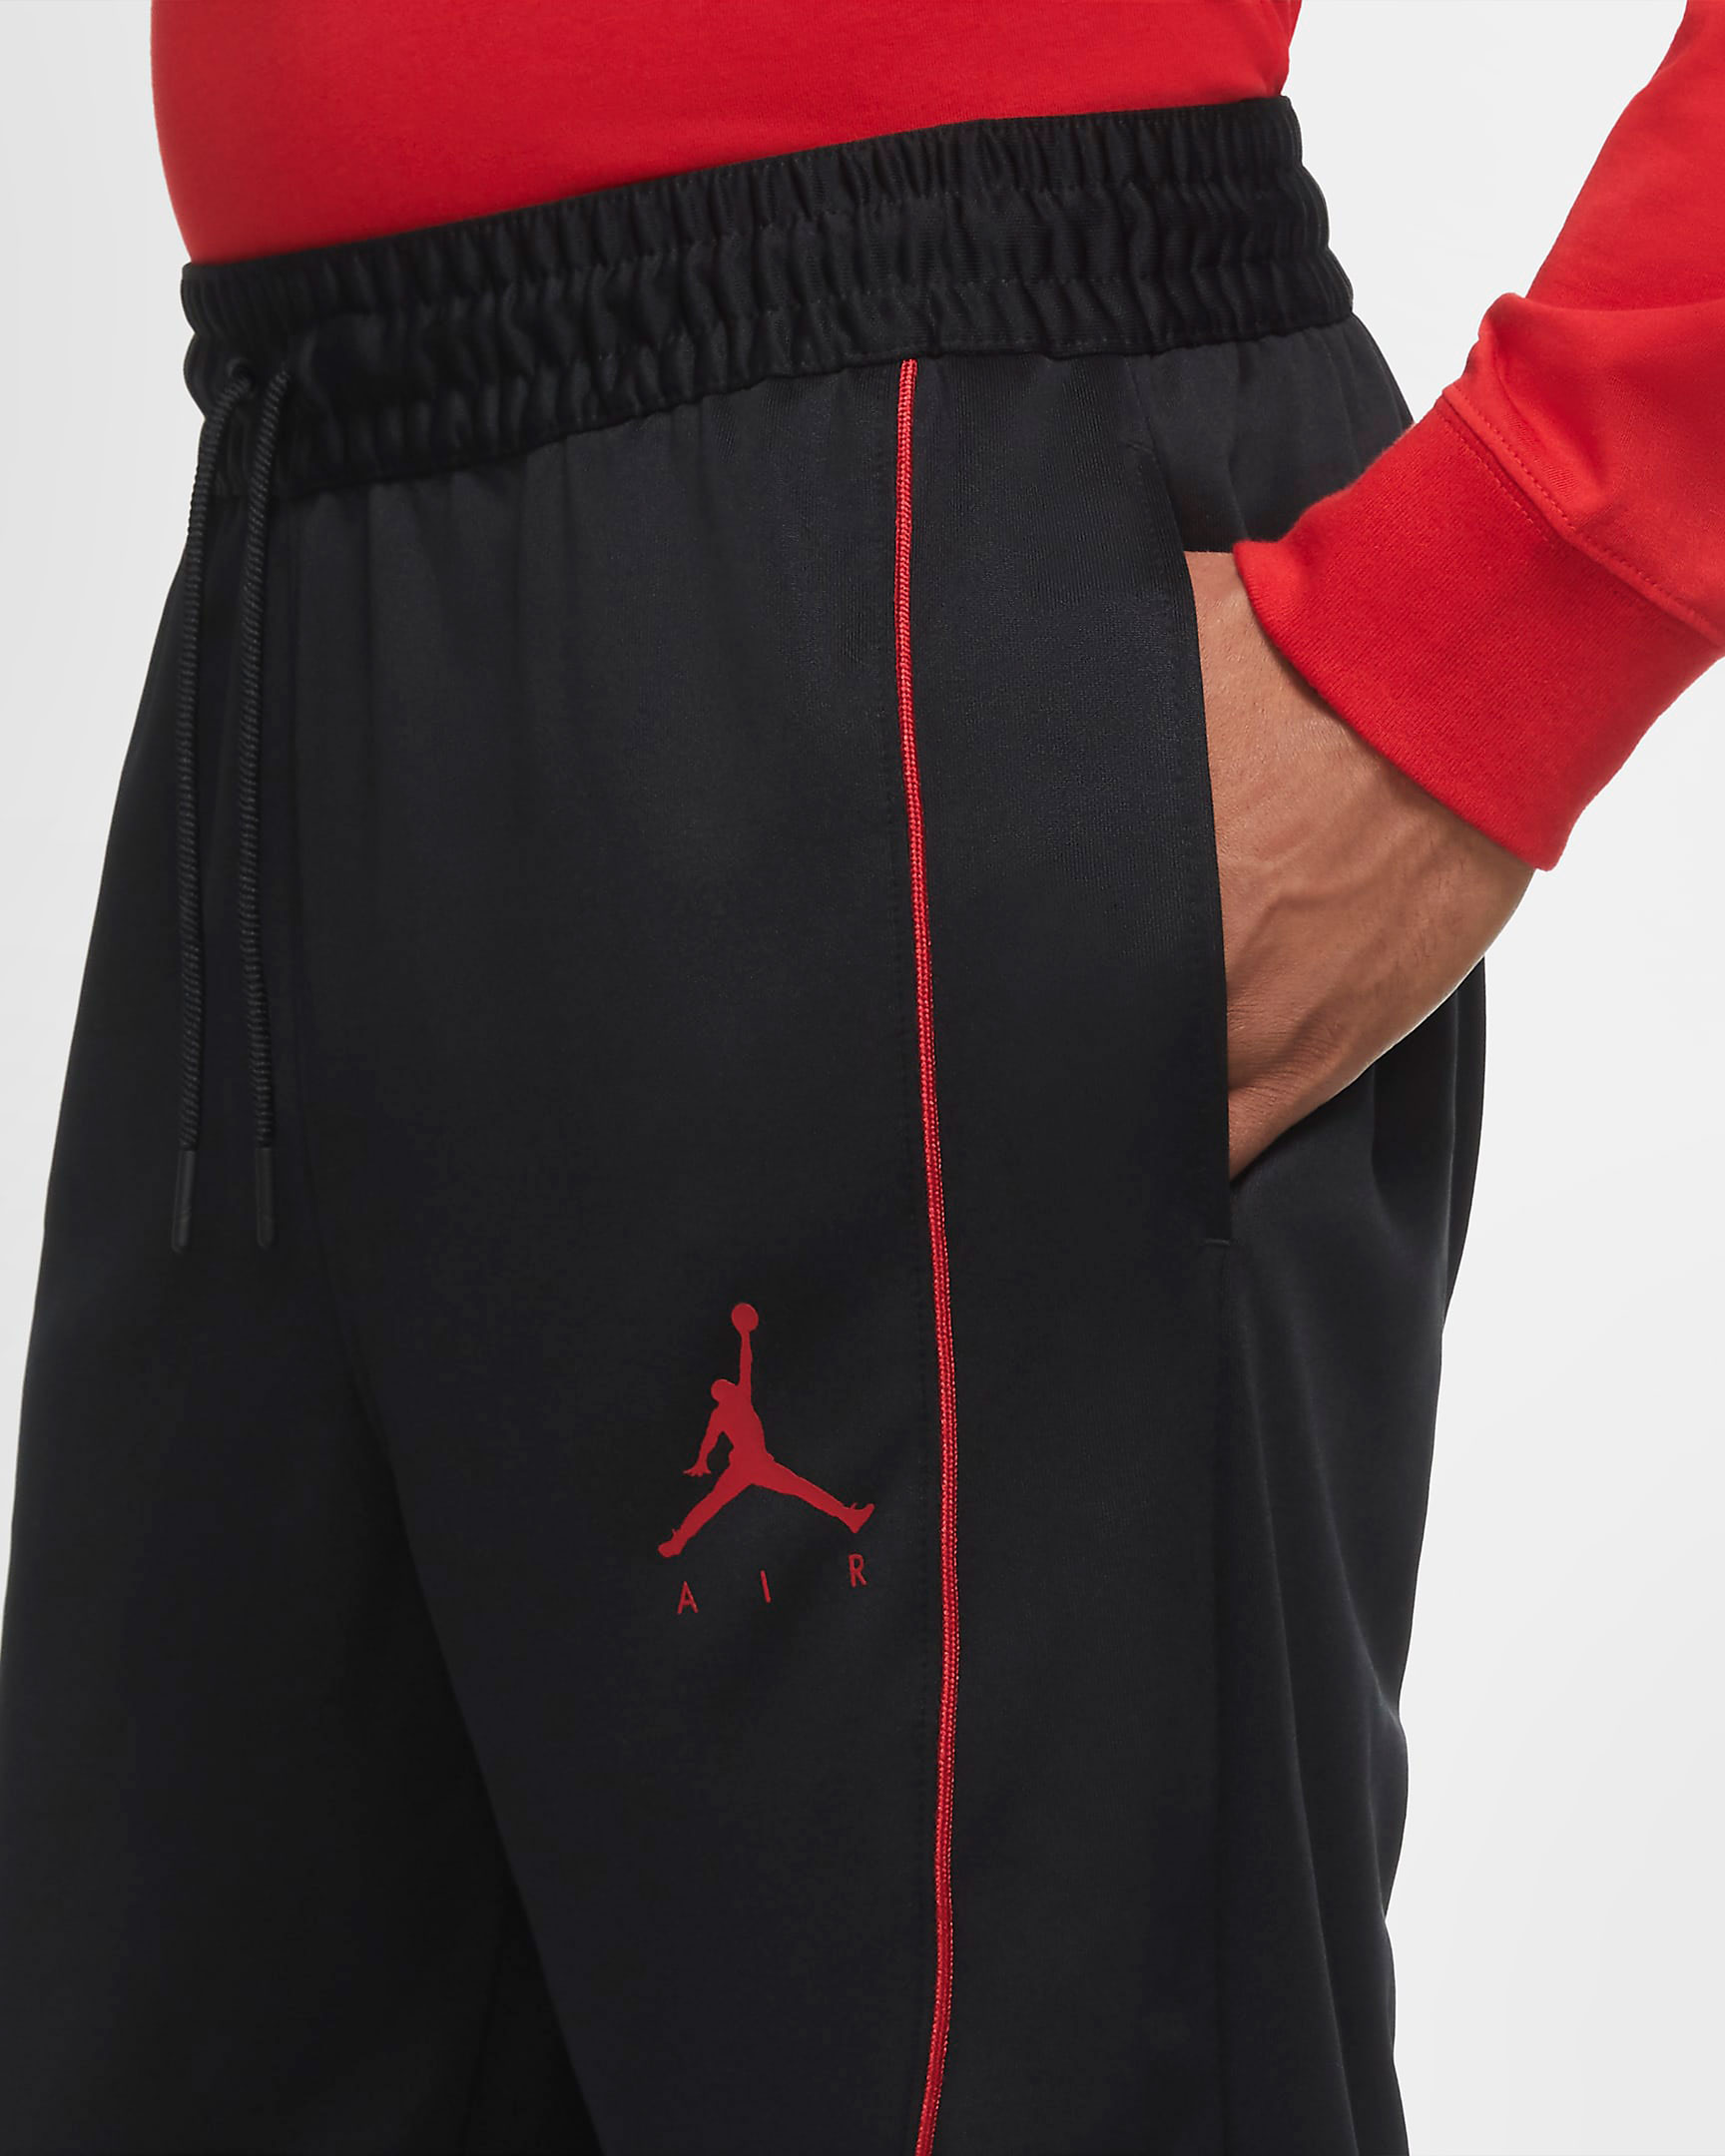 air-jordan-35-warrior-trackpants-match-2